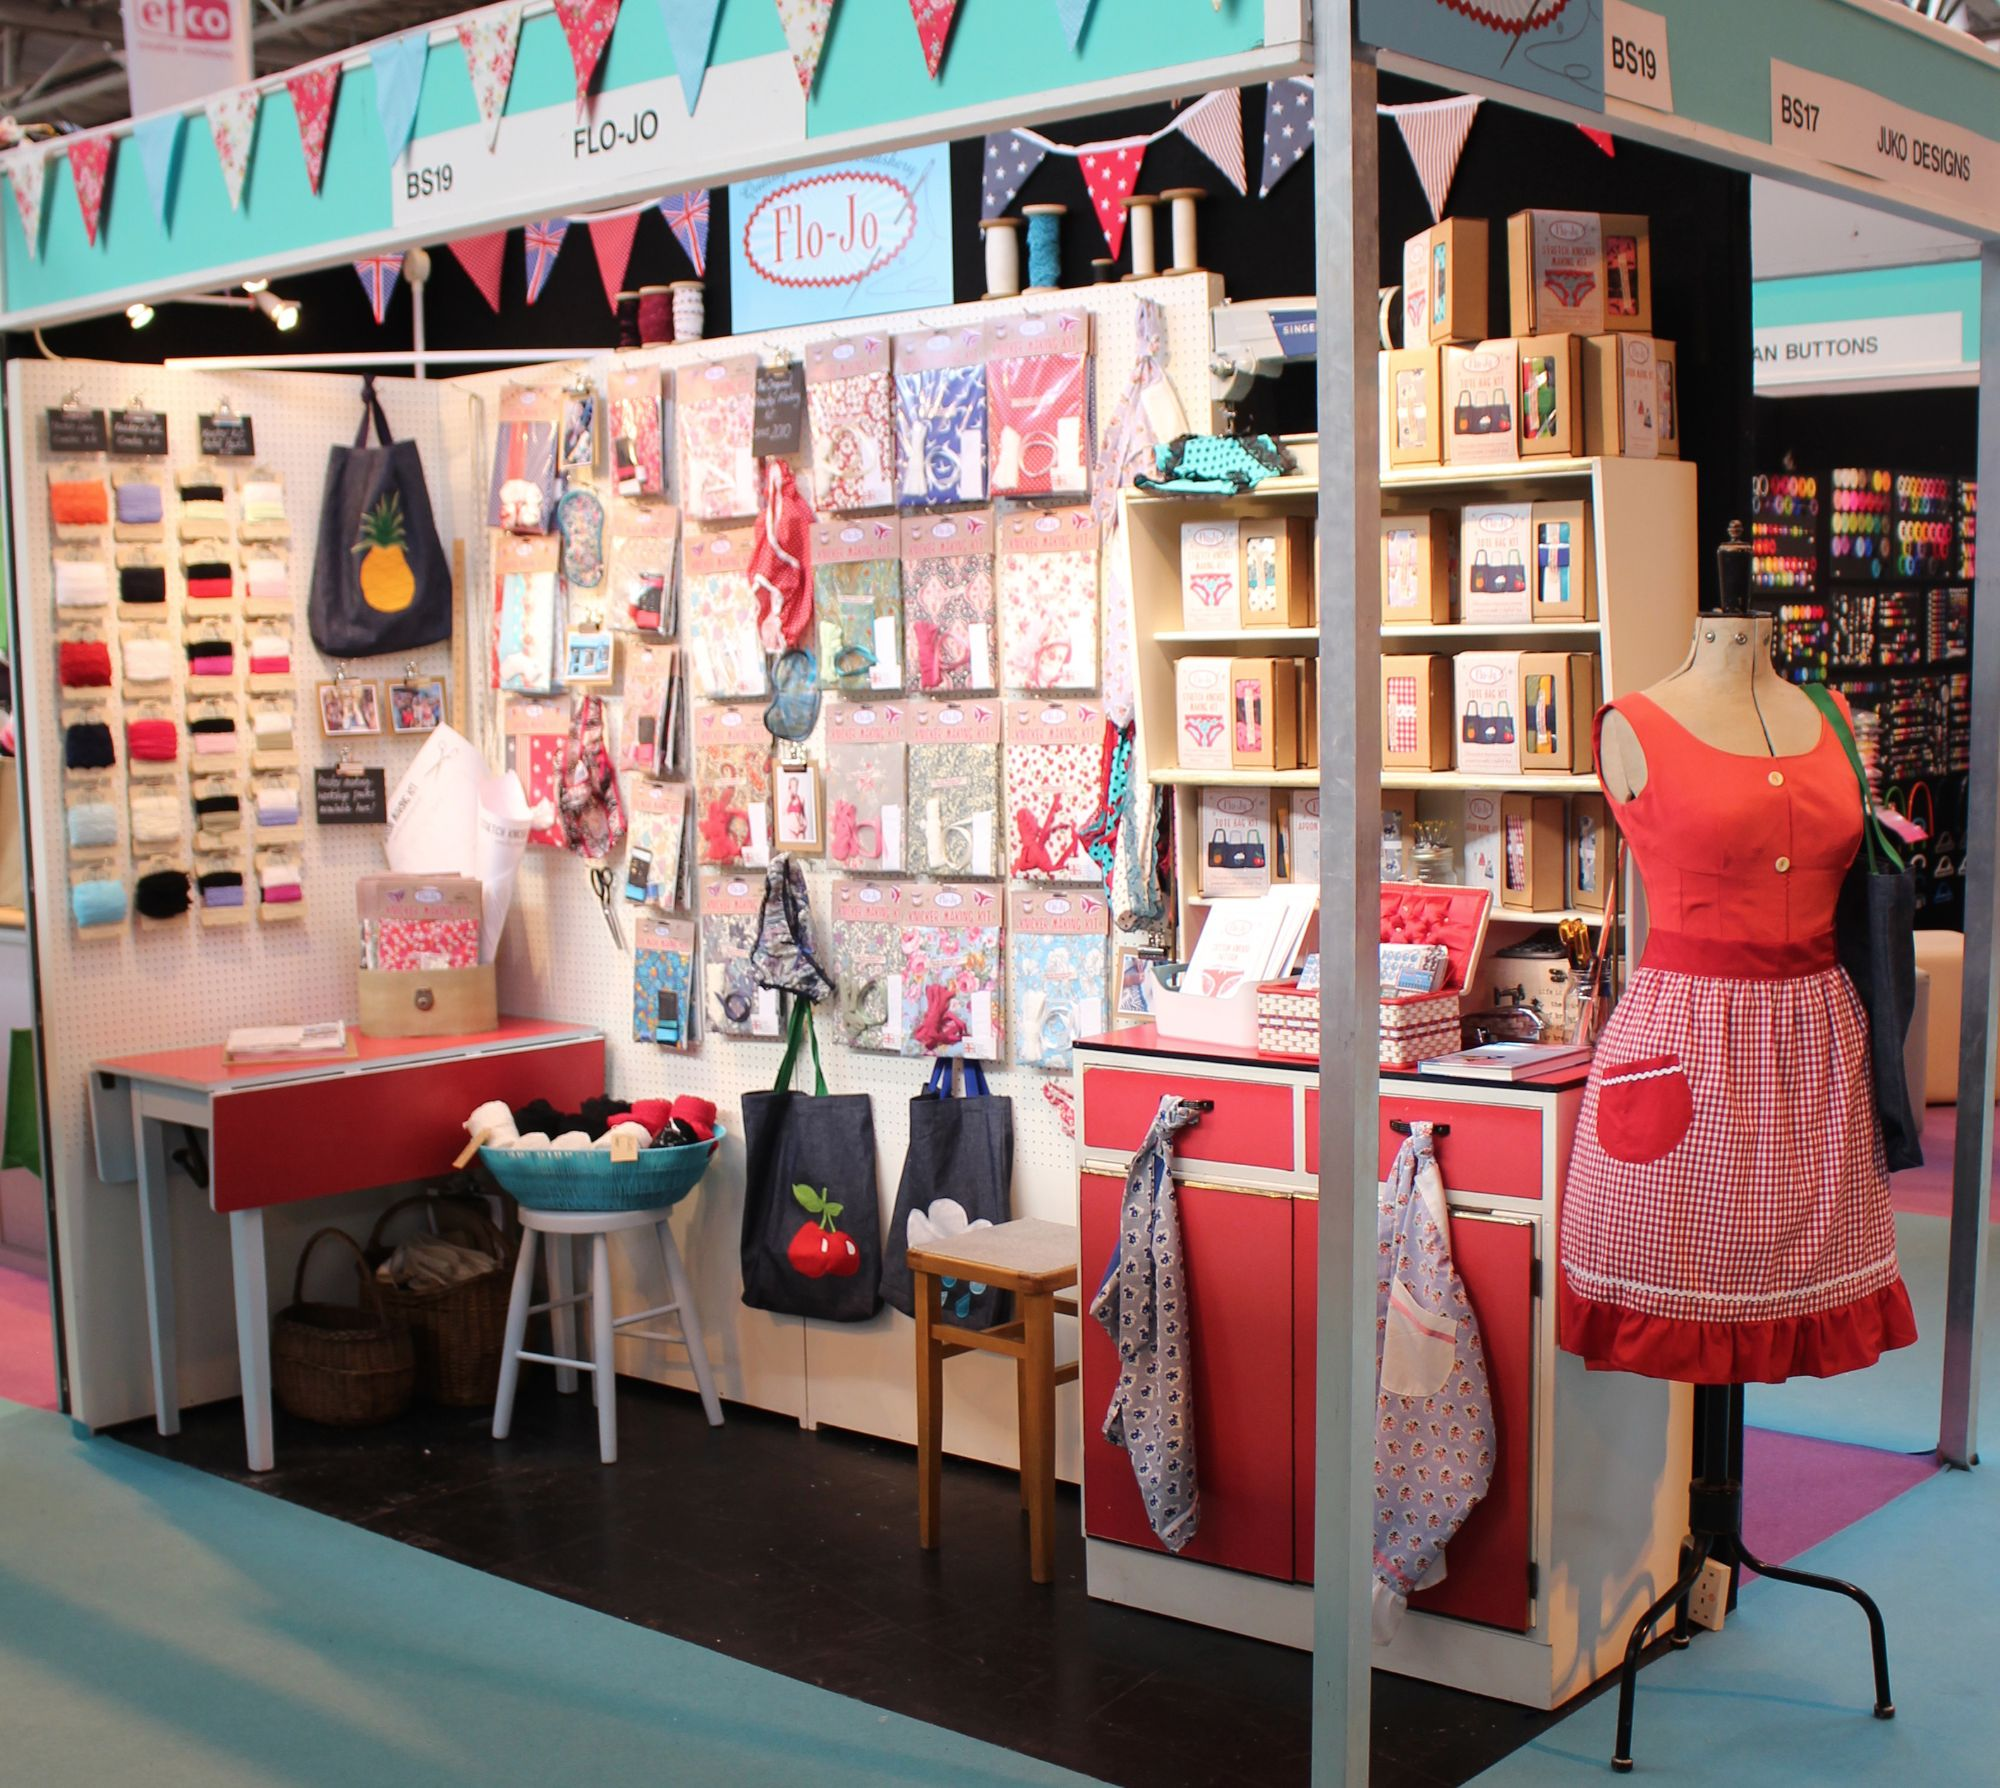 Flo-Jo stand at NEC Trade show